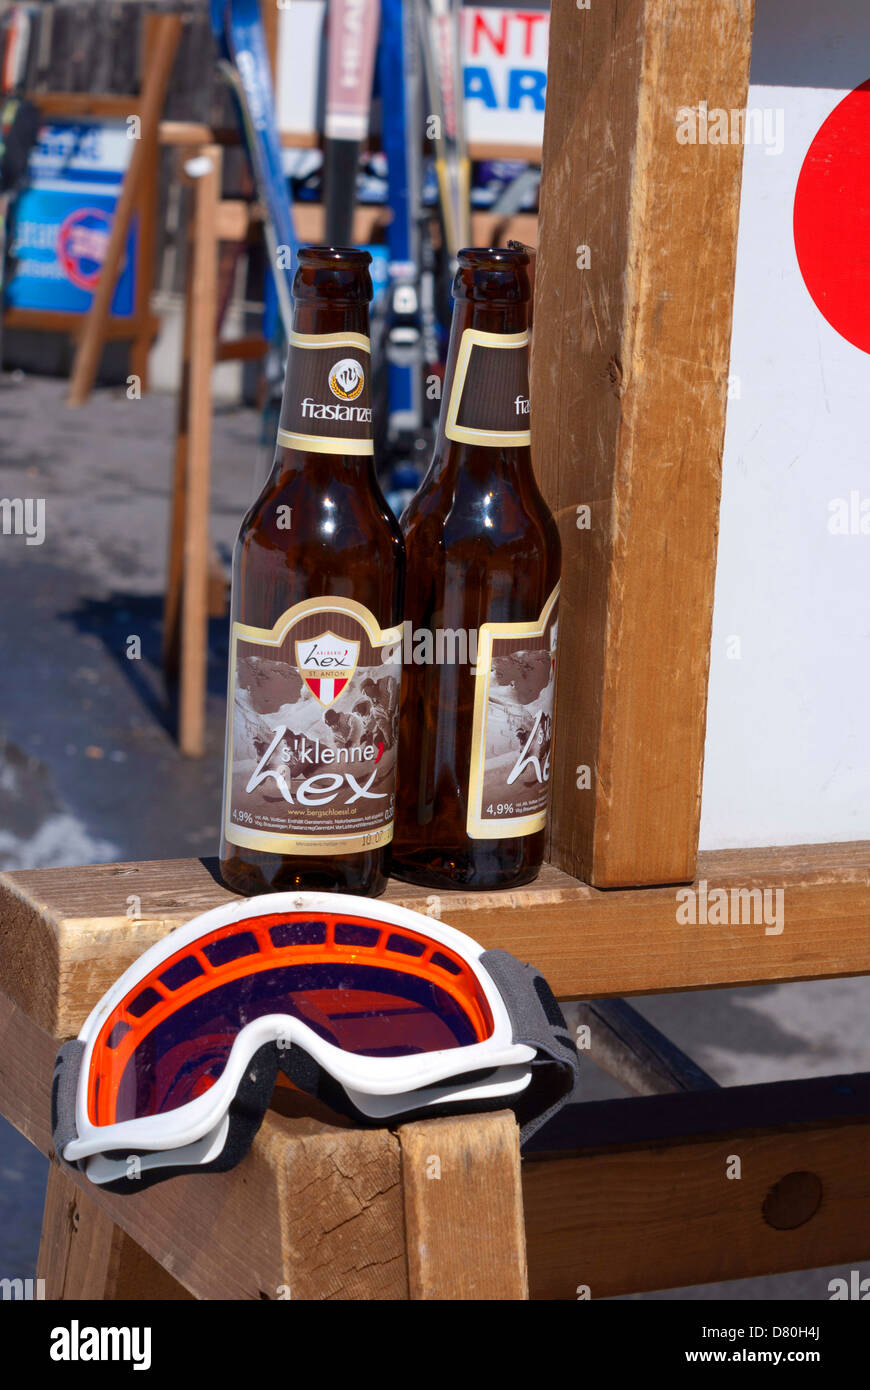 Ski goggles and beer bottles - Stock Image